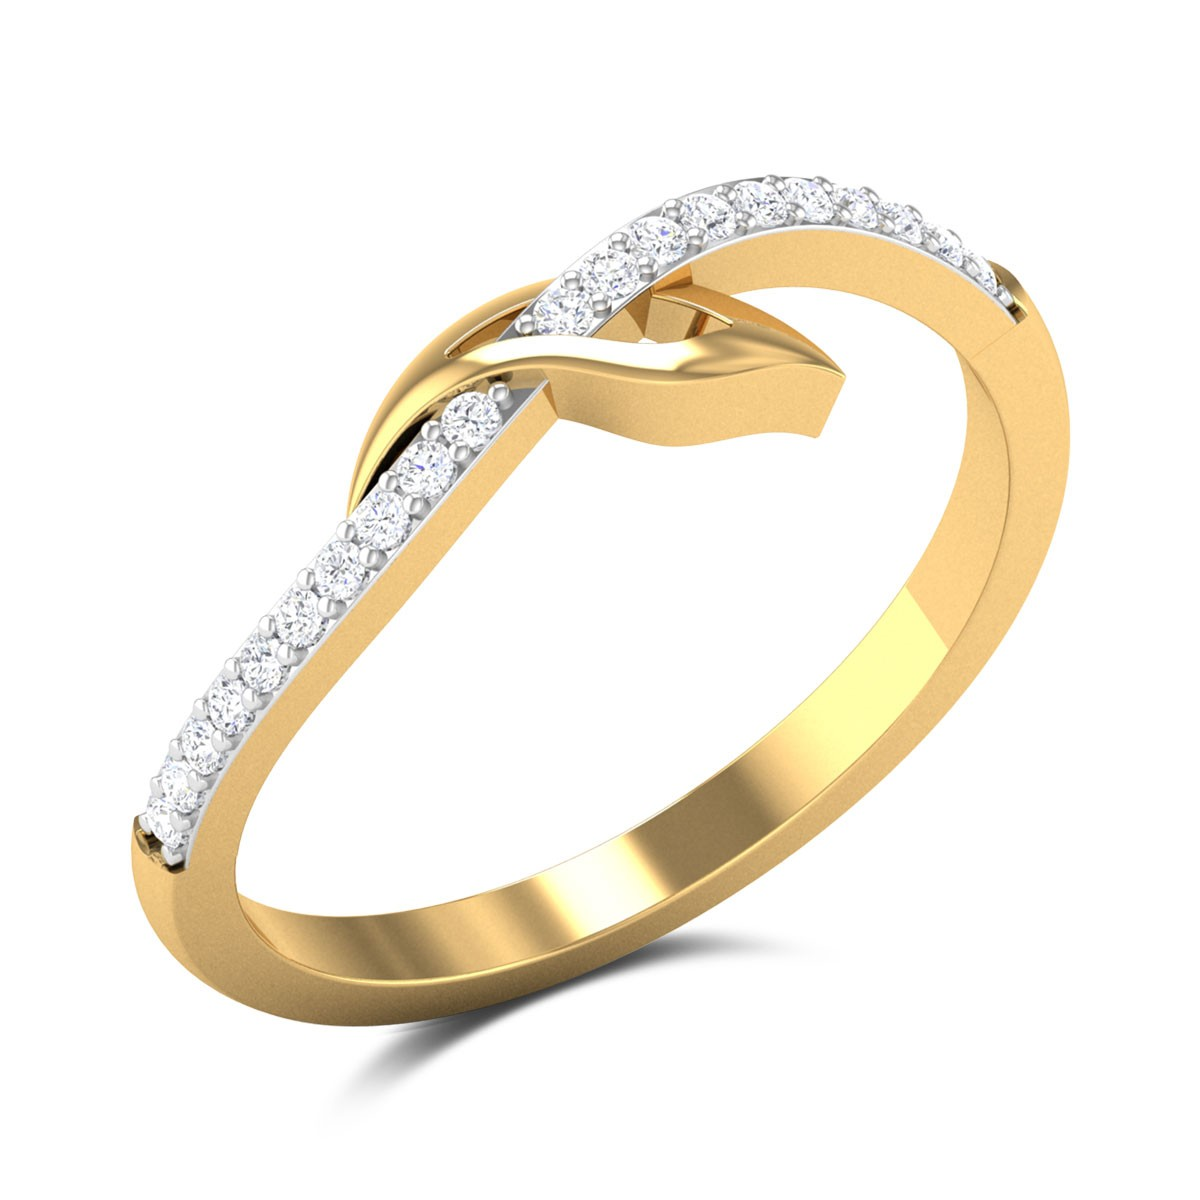 Nikita Diamond Ring